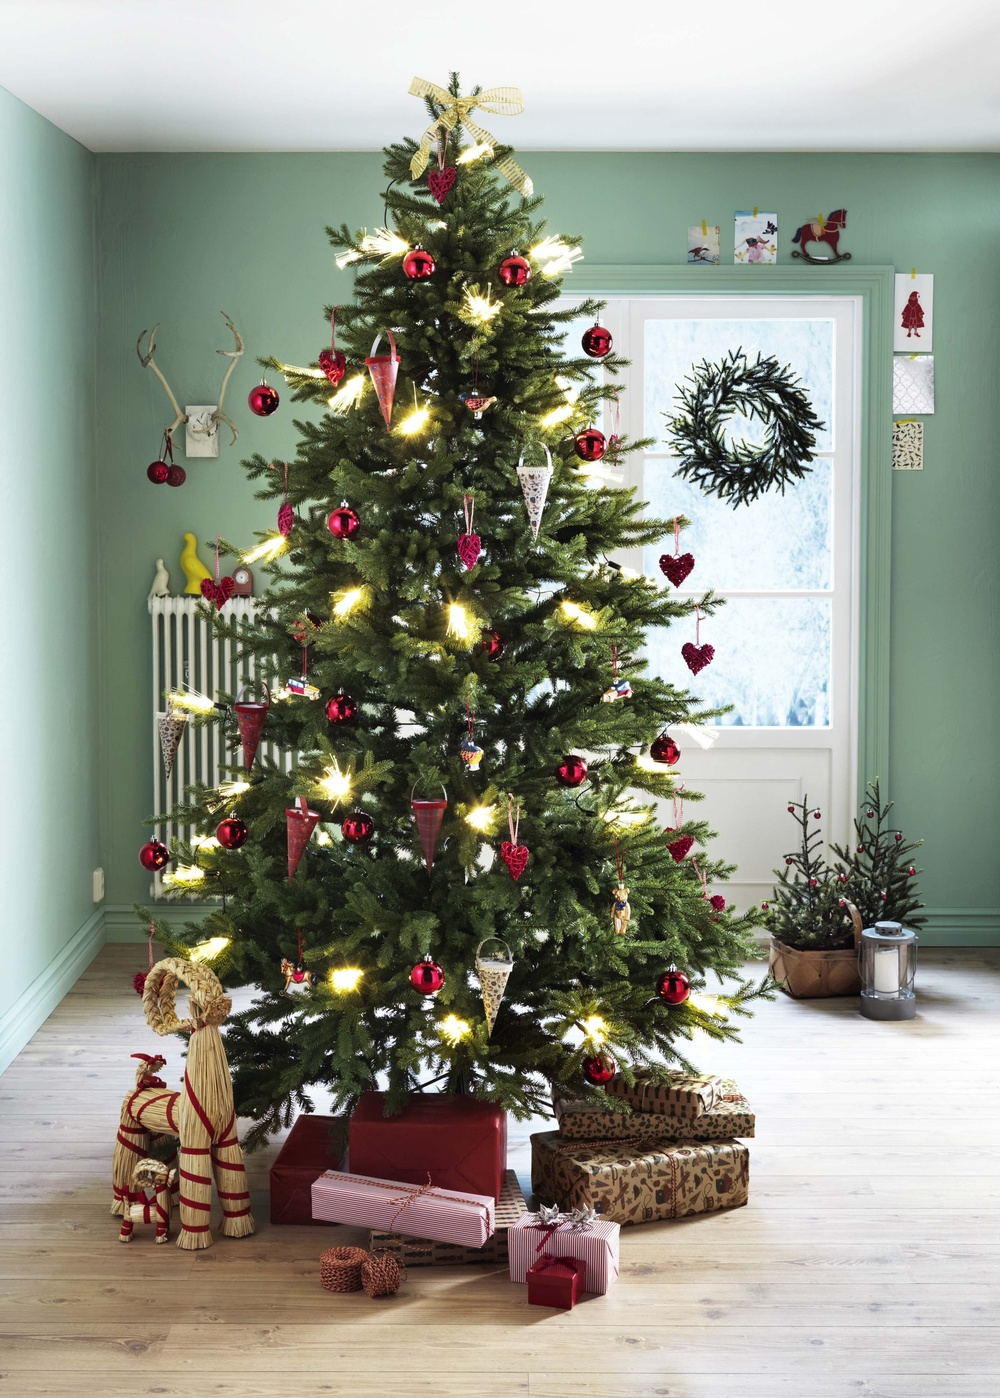 ikea belfast will be selling real christmas trees for 25 plus you get a 20 voucher for use in. Black Bedroom Furniture Sets. Home Design Ideas